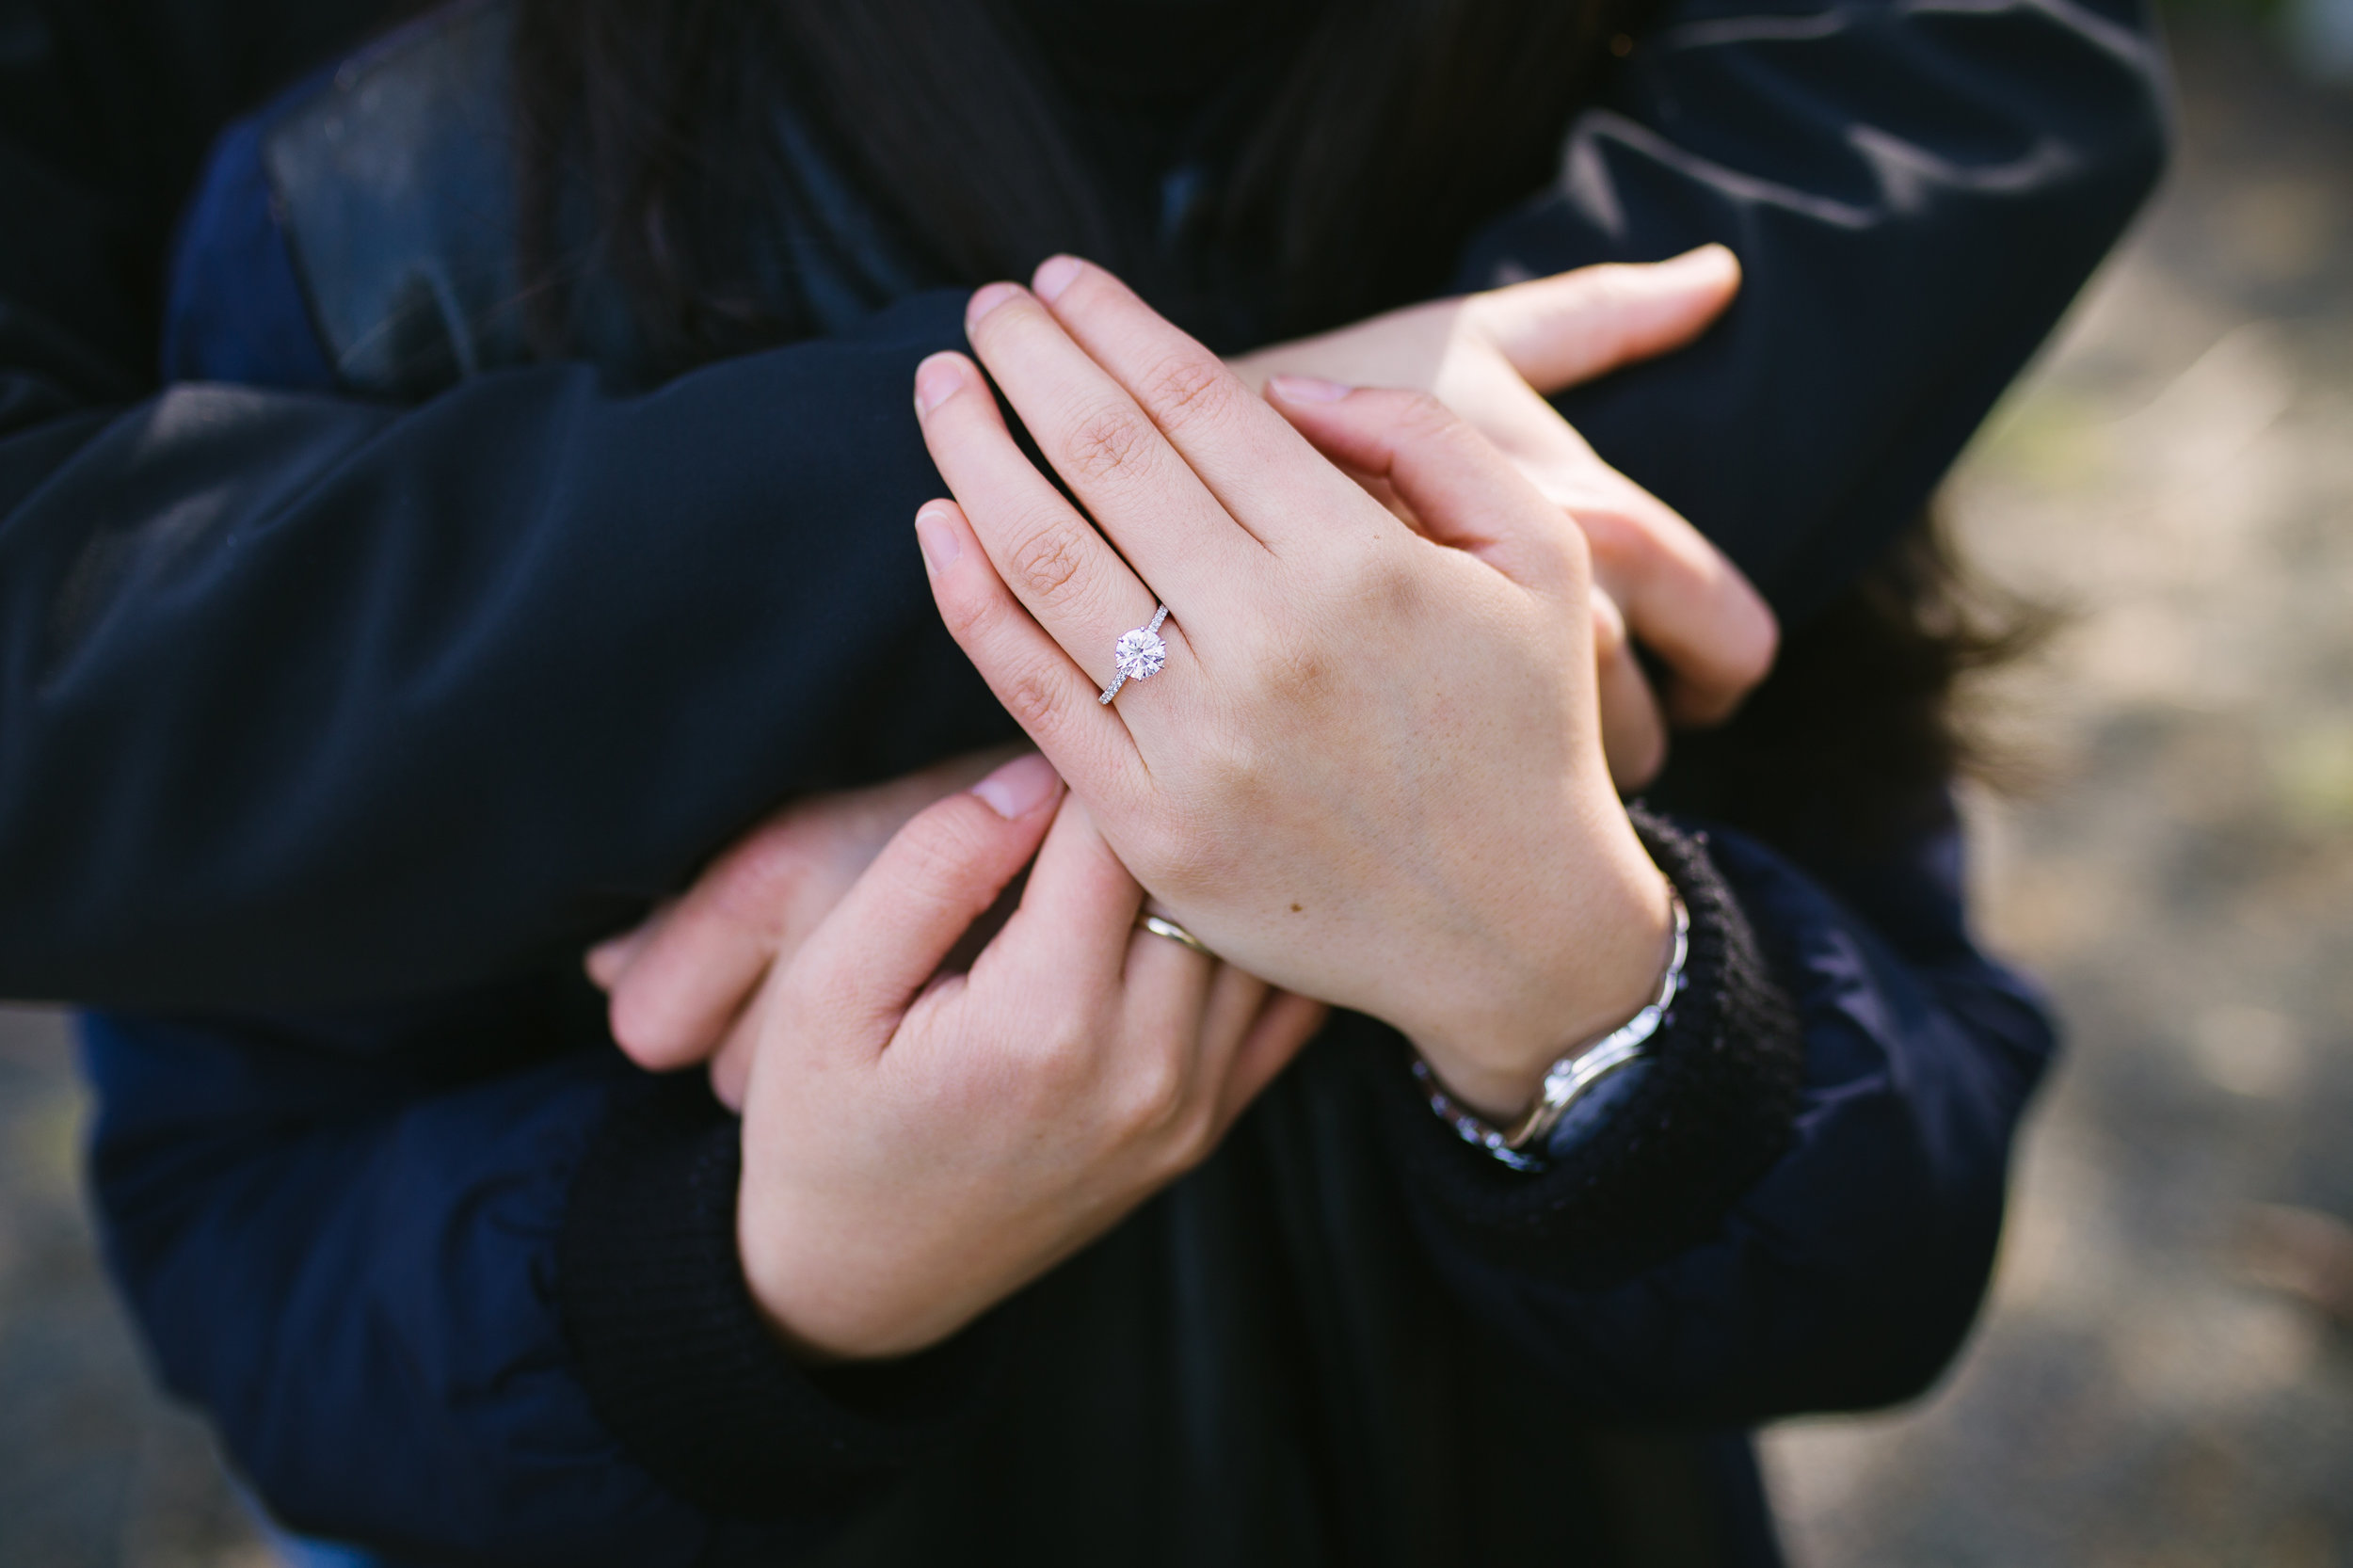 cathedral-park-engagement-photography-8.jpg